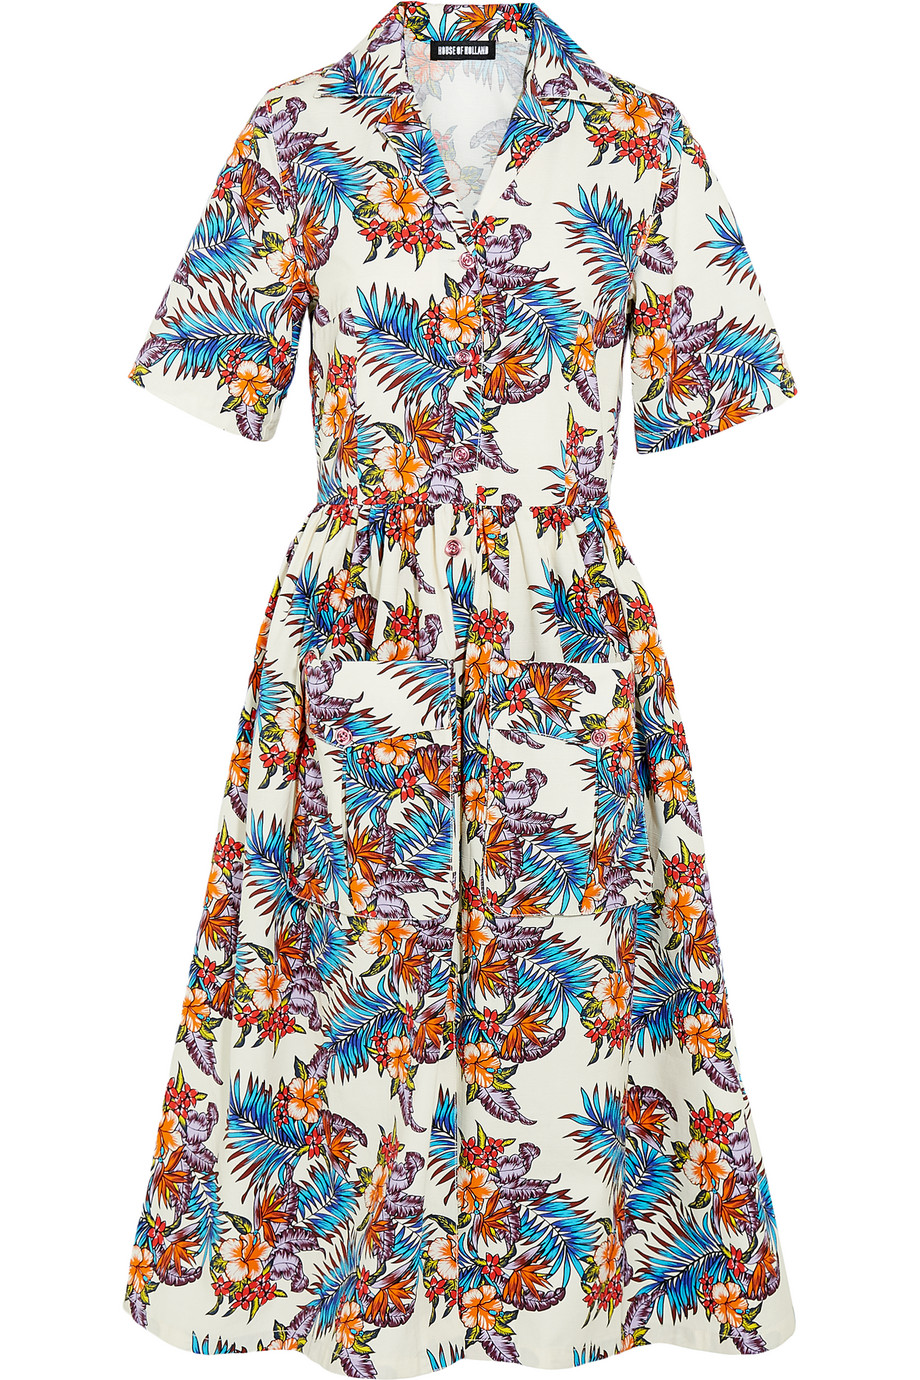 Printed Slub Cotton Midi Dress, House of Holland, Cream/Blue, Women's, Size: 8